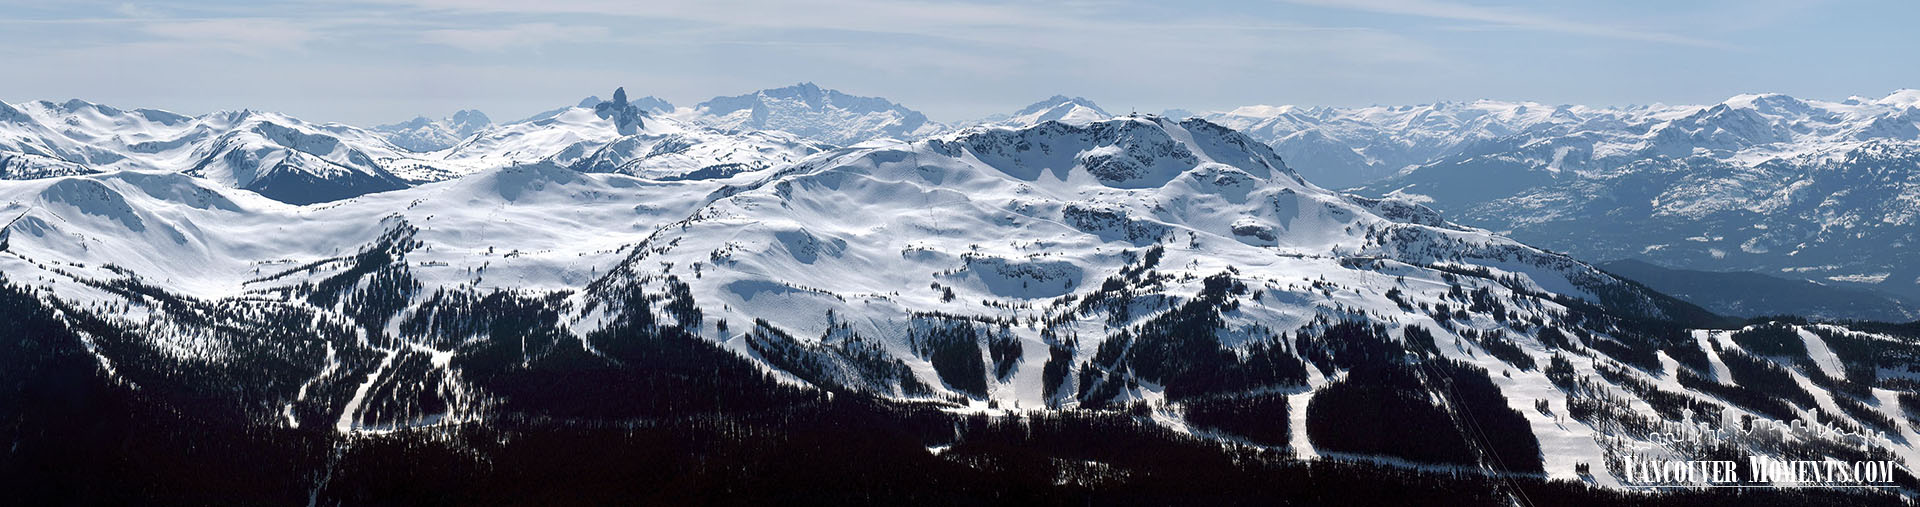 Whistler_from_Blackcomb_WH028A